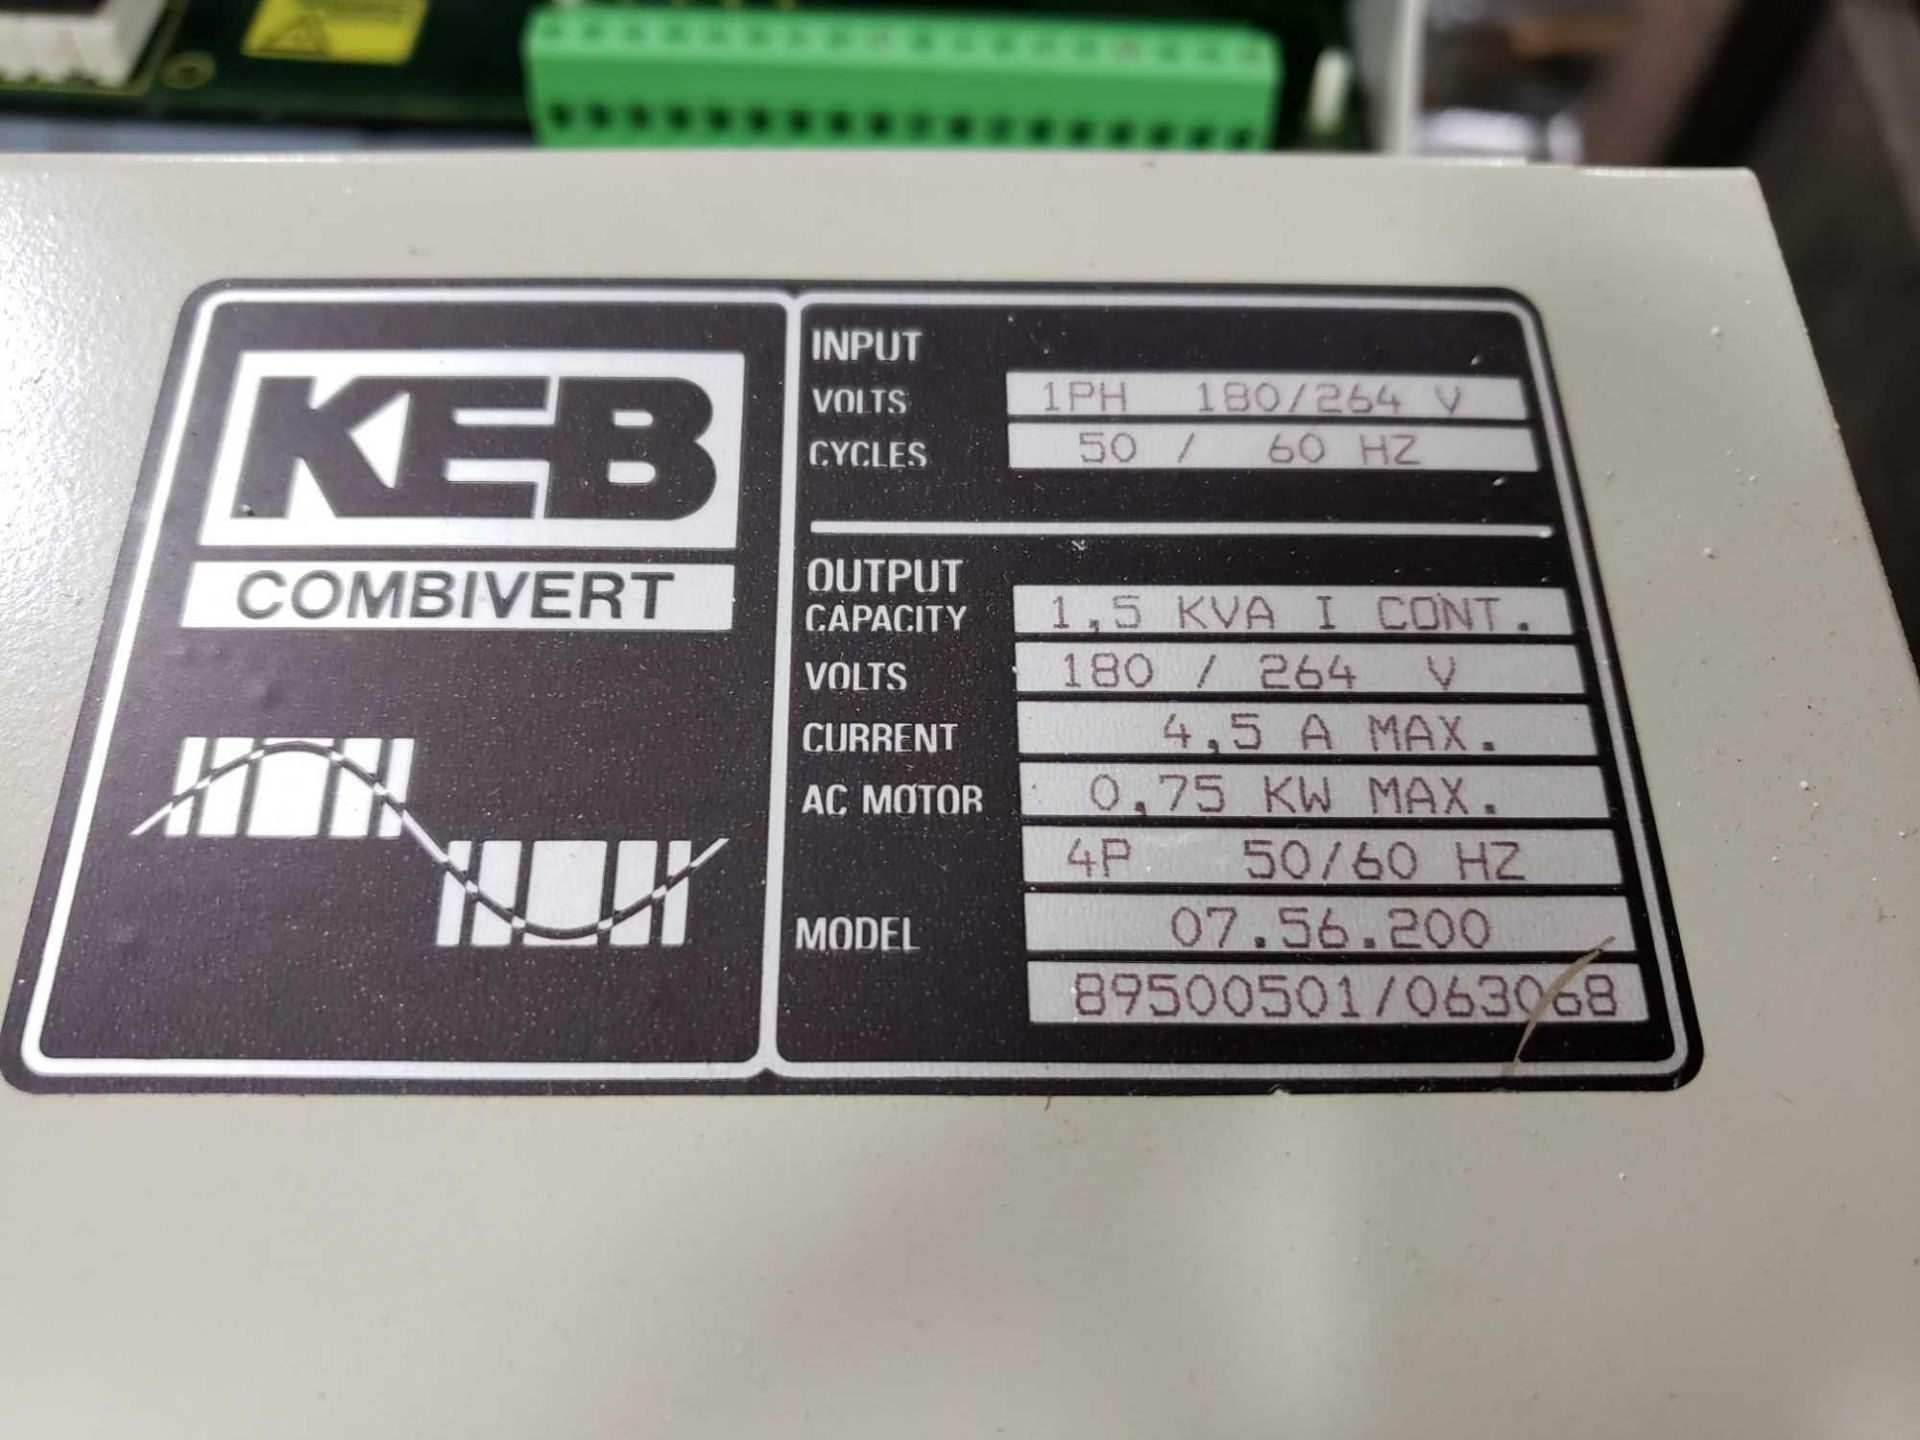 Lot 4 - KEB Combivert drive. 180-264v input, 180-264v AC output. New in box.